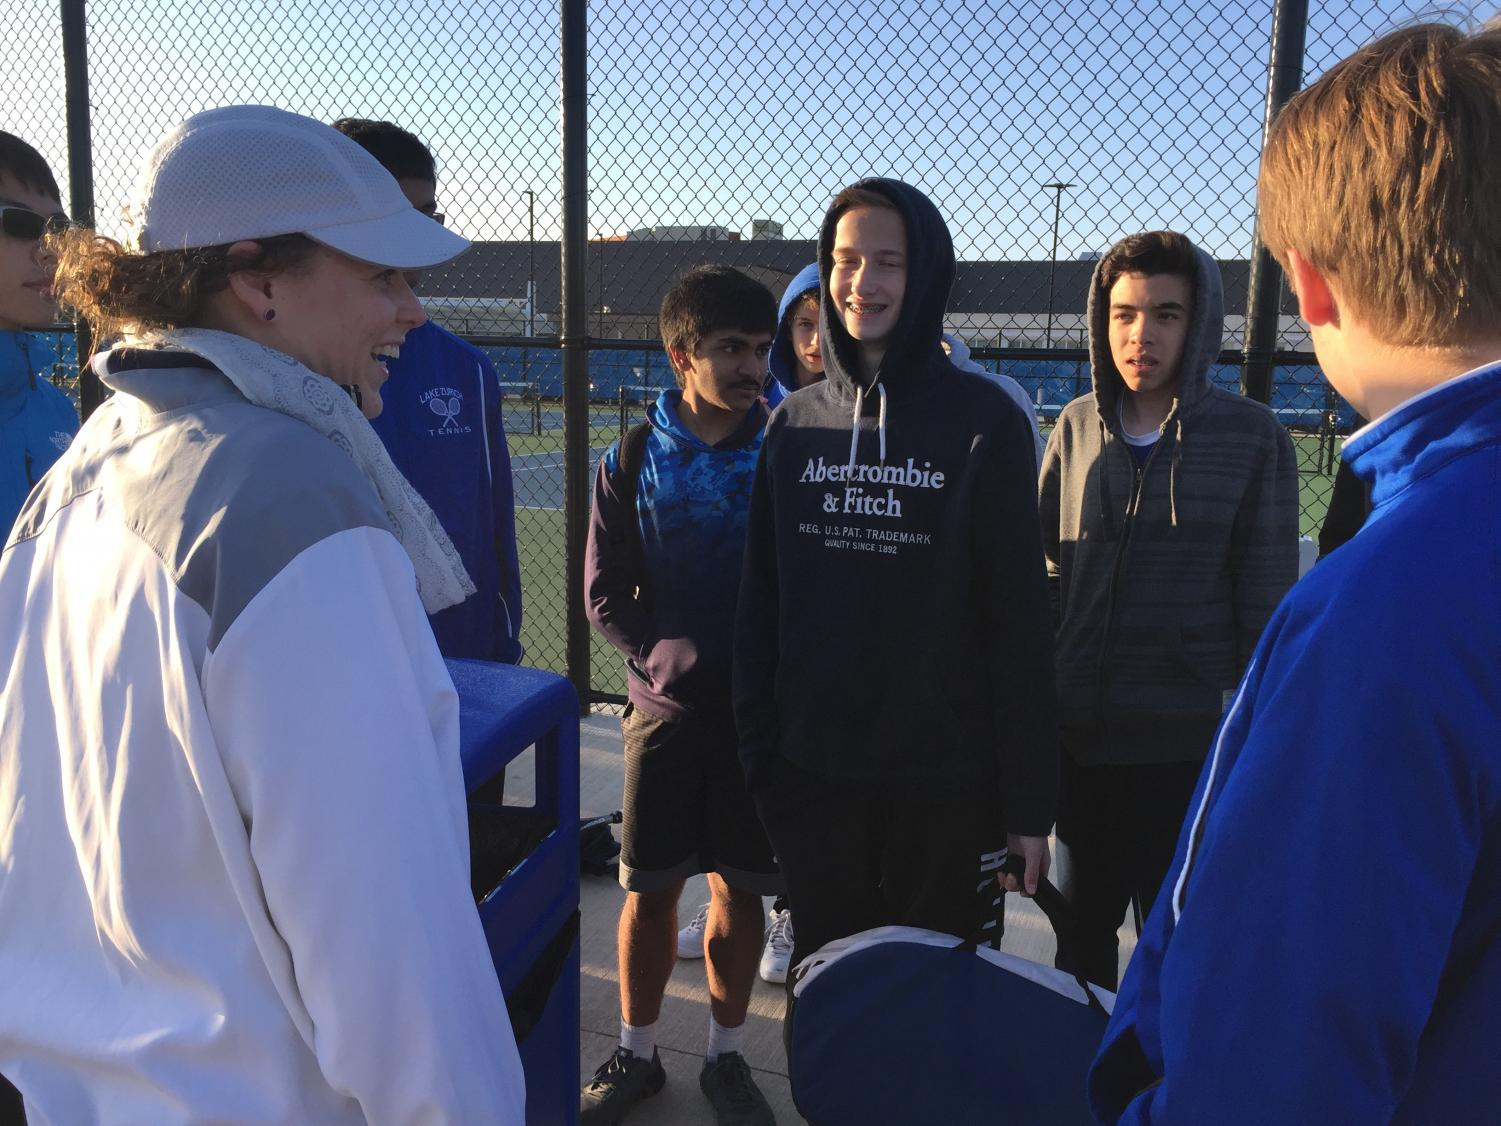 Coach Emily Chrisman gives advice and positive encouragement to her players. The positive coaching alliance has made an impact on how she interacts with her players.